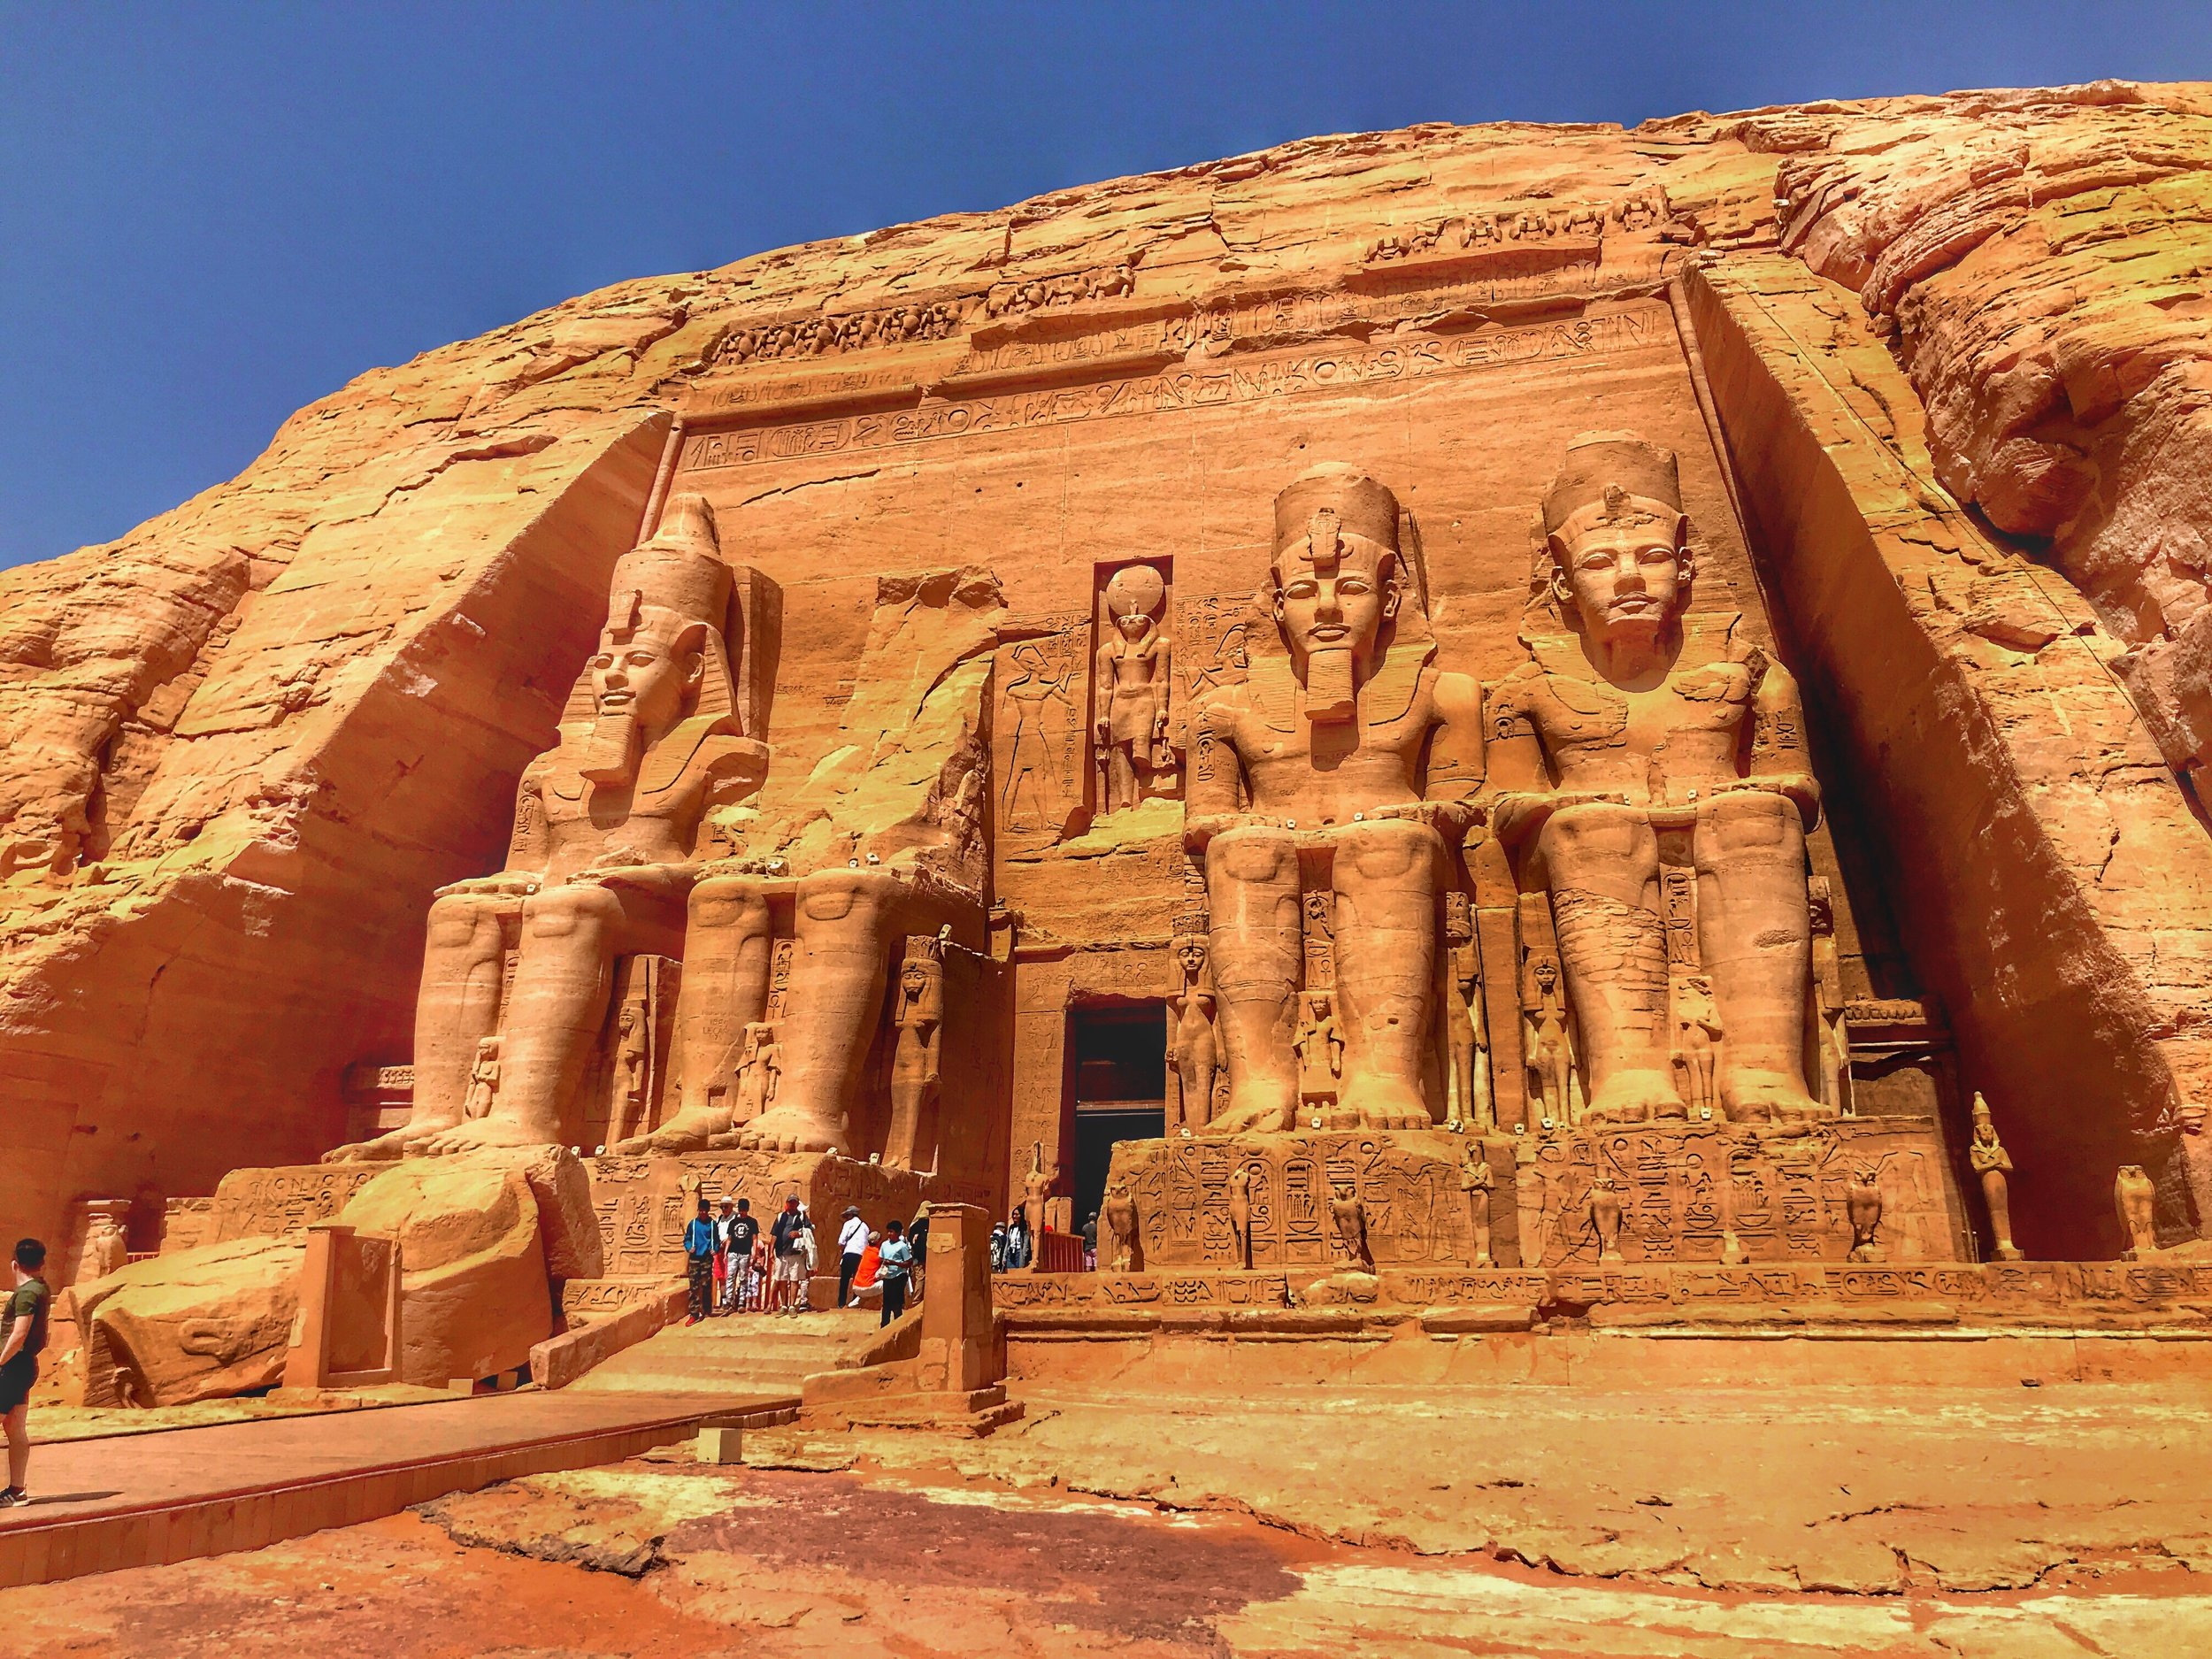 Add Aswan to your itinerary and spend a morning at Abu Simbel